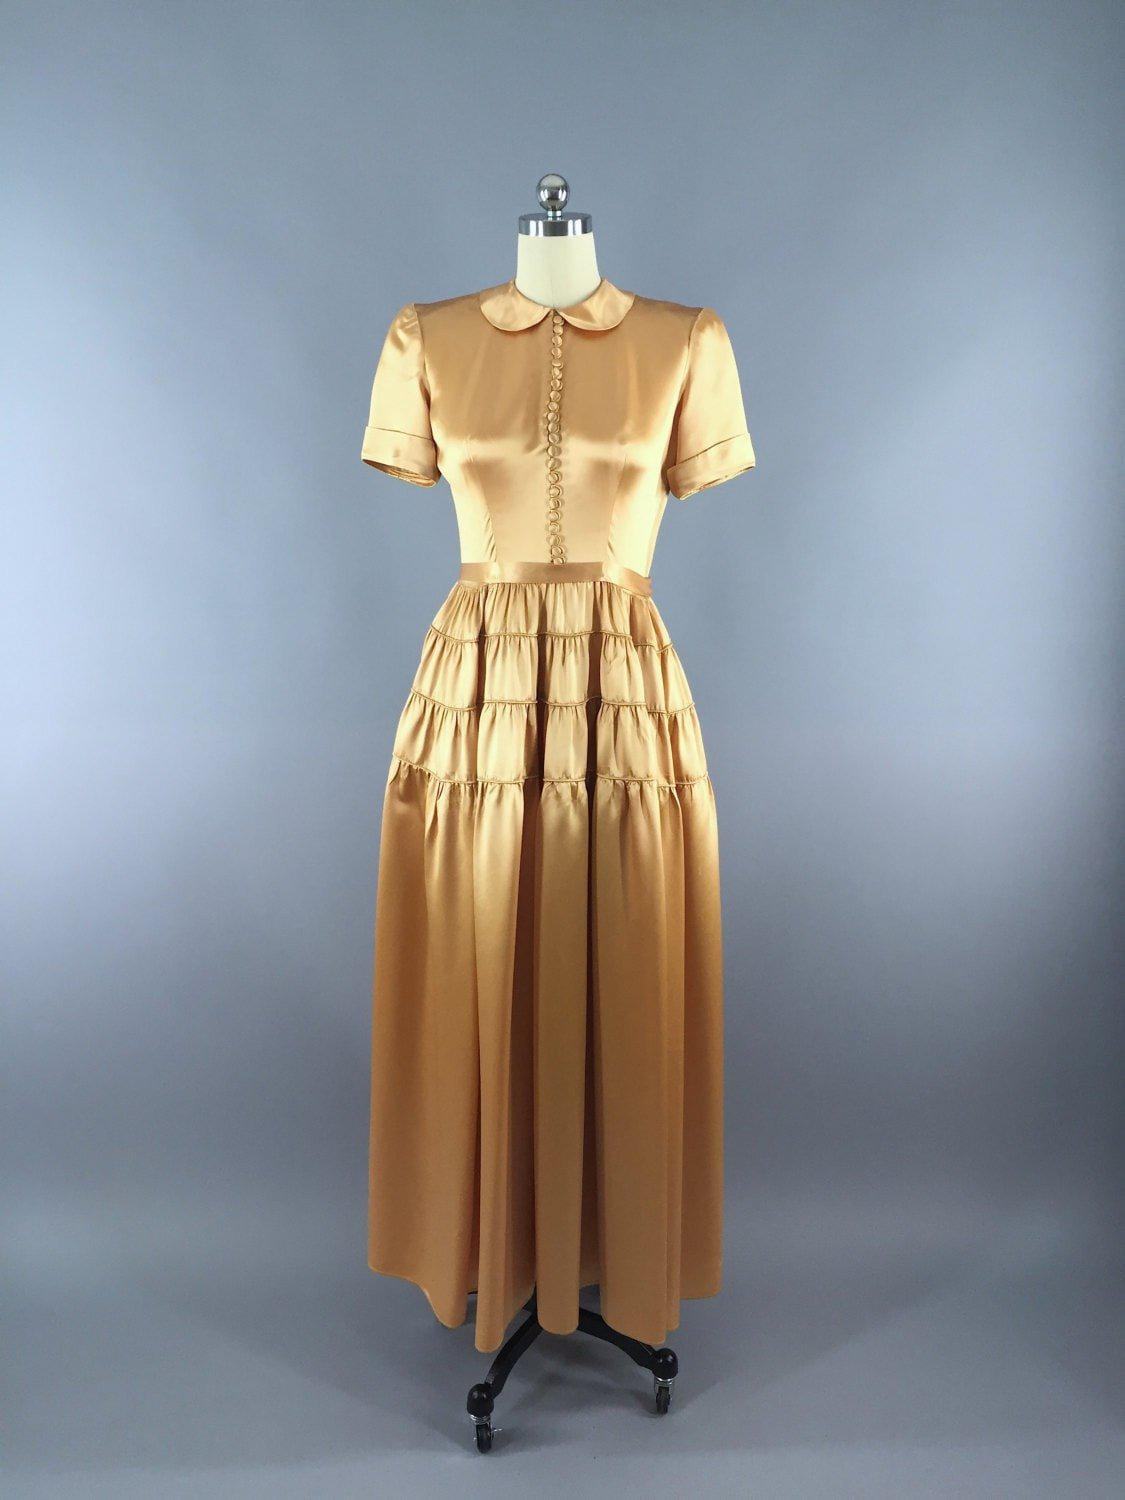 Vintage 1930s - 1940s Silk Satin Dress / Fred Perlberg Dress ThisBlueBird